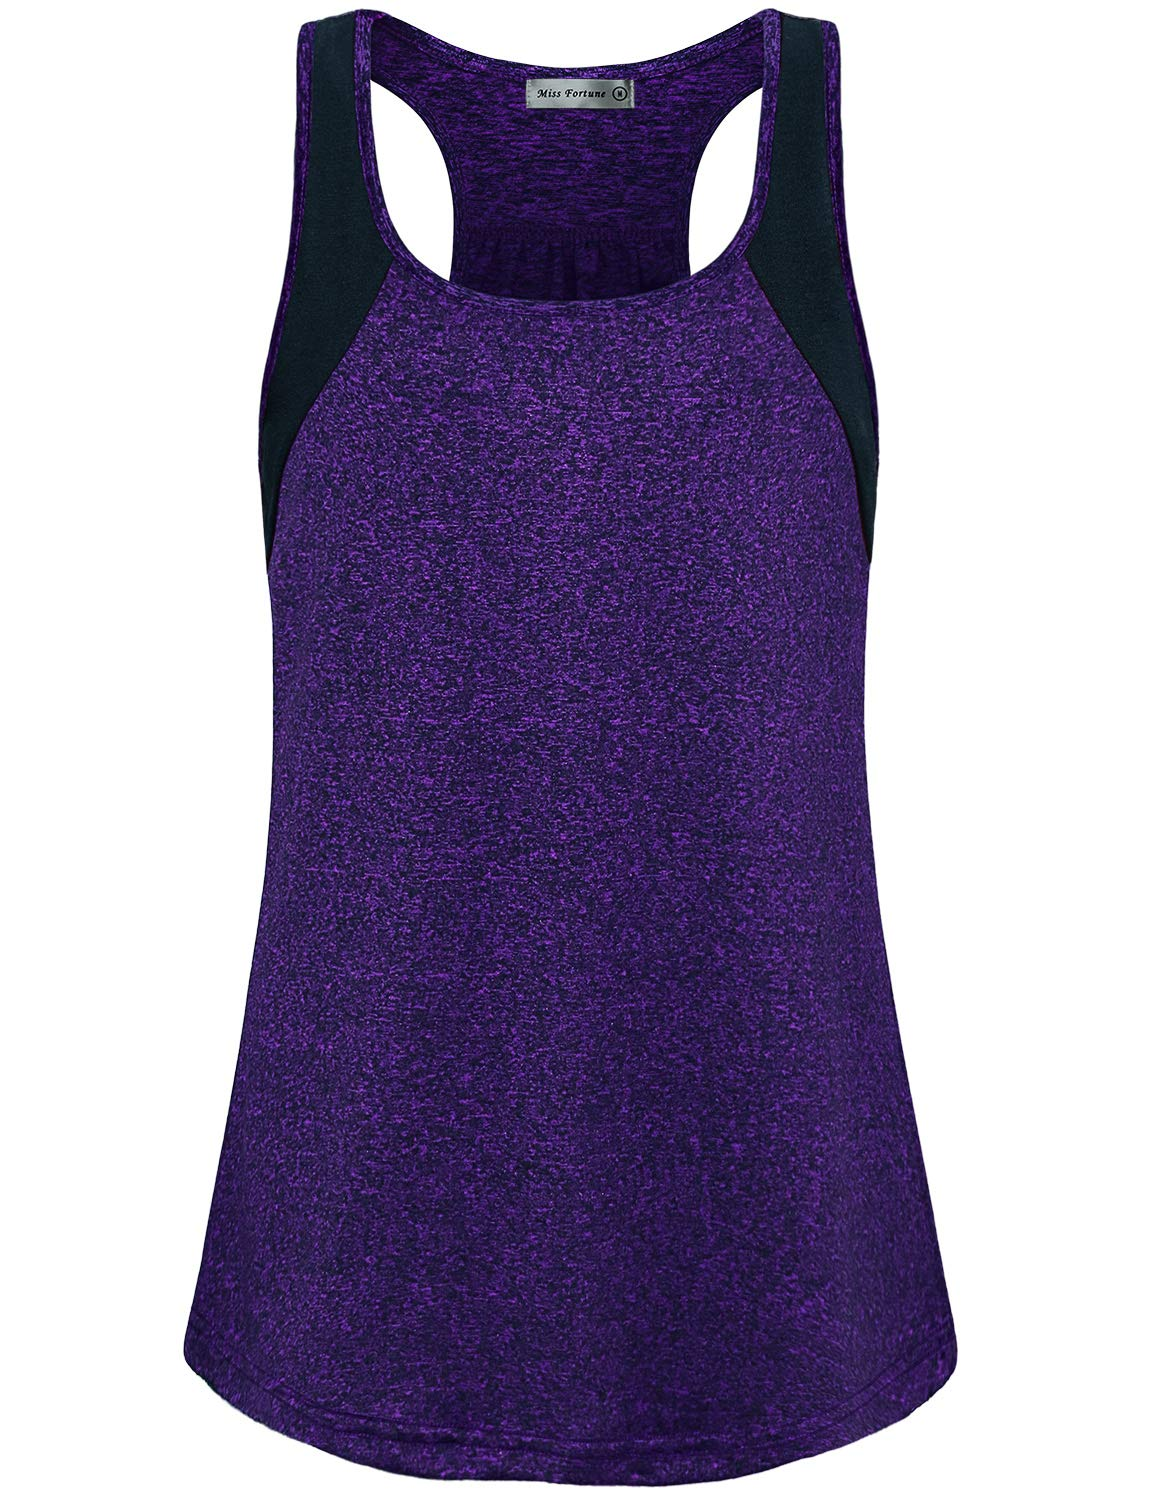 MISS FORTUNE Scoop Neck Exercise Top,Dri Fit Tank for Women Grey Basic Casual Active Workout Tops Fitting Sleeveless Athletic Shirts Gym Tee Tops Purple L by MISS FORTUNE